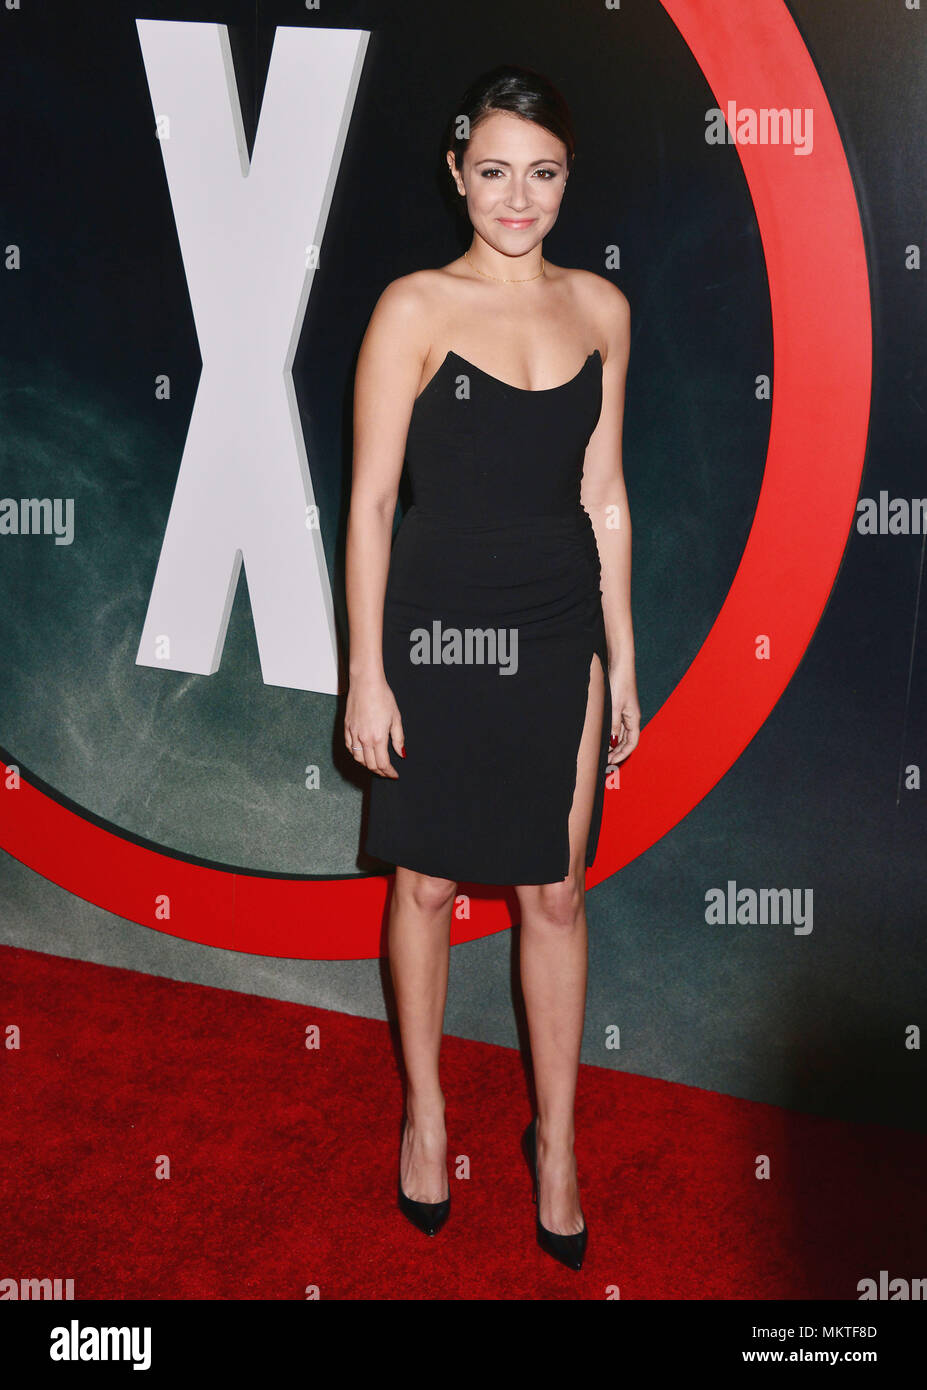 Italia Ricci 060  at The X-Files Premiere at California Science Center in Los Angeles, CA  January 12, 2016.-------- Italia Ricci 060  --------- Event in Hollywood Life - California,  Red Carpet Event, Vertical, USA, Film Industry, Celebrities,  Photography, Bestof, Arts Culture and Entertainment, Topix Celebrities fashion /  from the Red Carpet-2016, one person, Vertical, Best of, Hollywood Life, Event in Hollywood Life - California,  Red Carpet and backstage, USA, Film Industry, Celebrities,  movie celebrities, TV celebrities, Music celebrities, Photography, Bestof, Arts Culture and Entertai - Stock Image